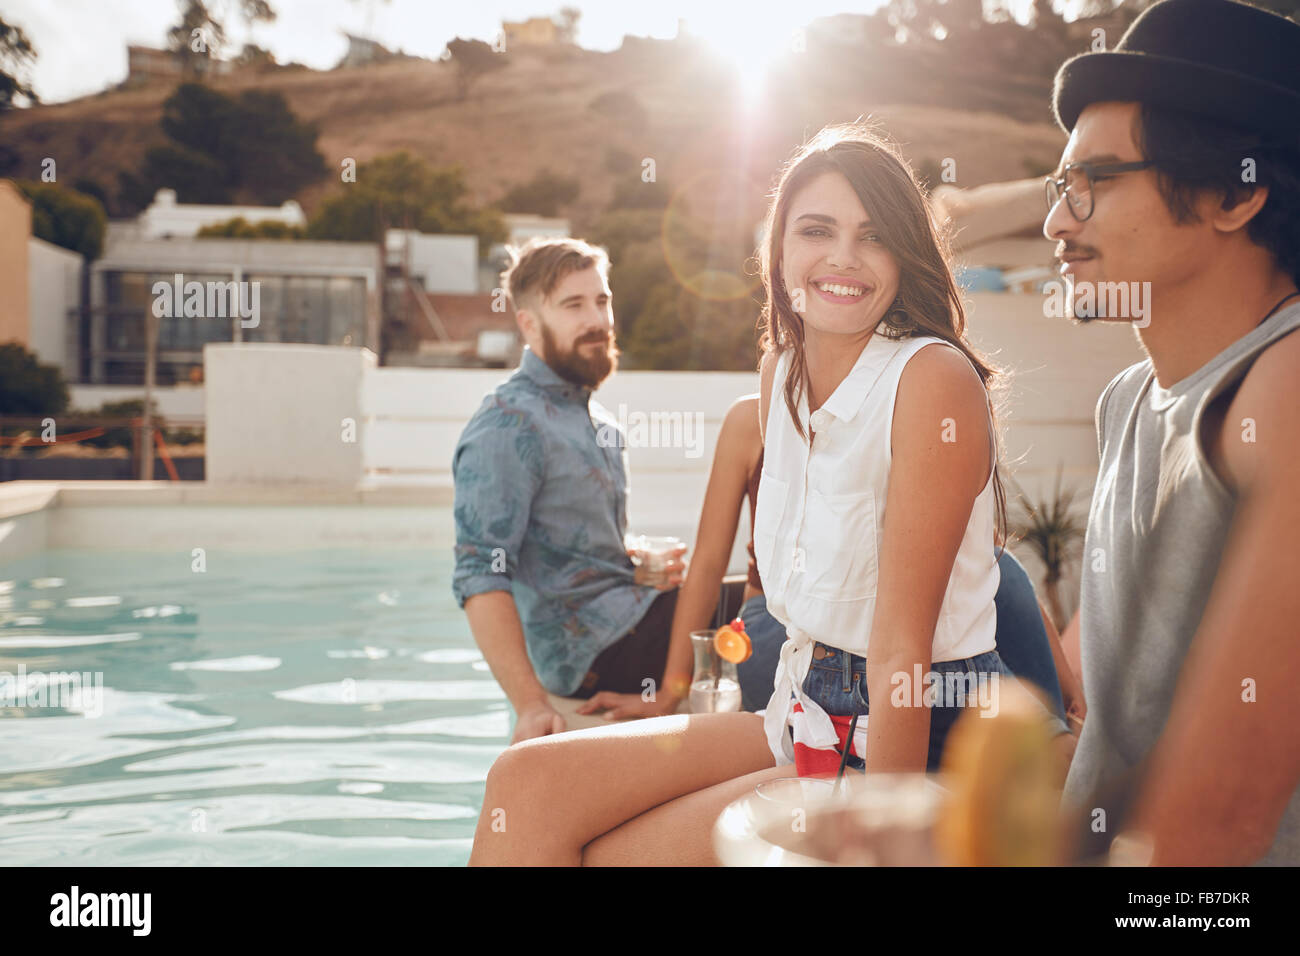 Portrait of beautiful young woman sitting by the pool with her friends around partying. Group of young people hanging - Stock Image